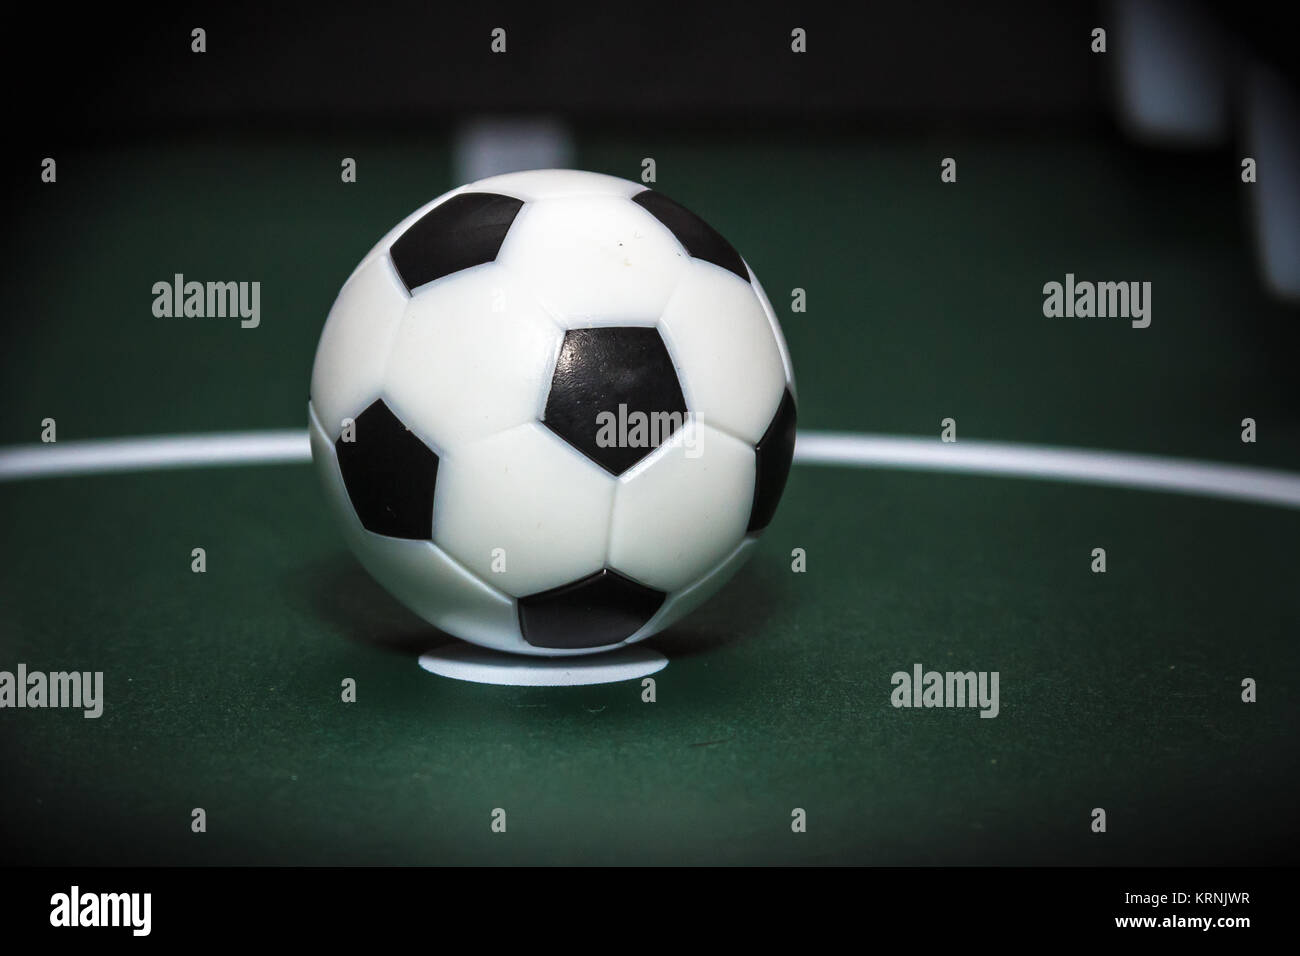 Soccer table game. Green field and plastic ball on it. Sport background - Stock Image